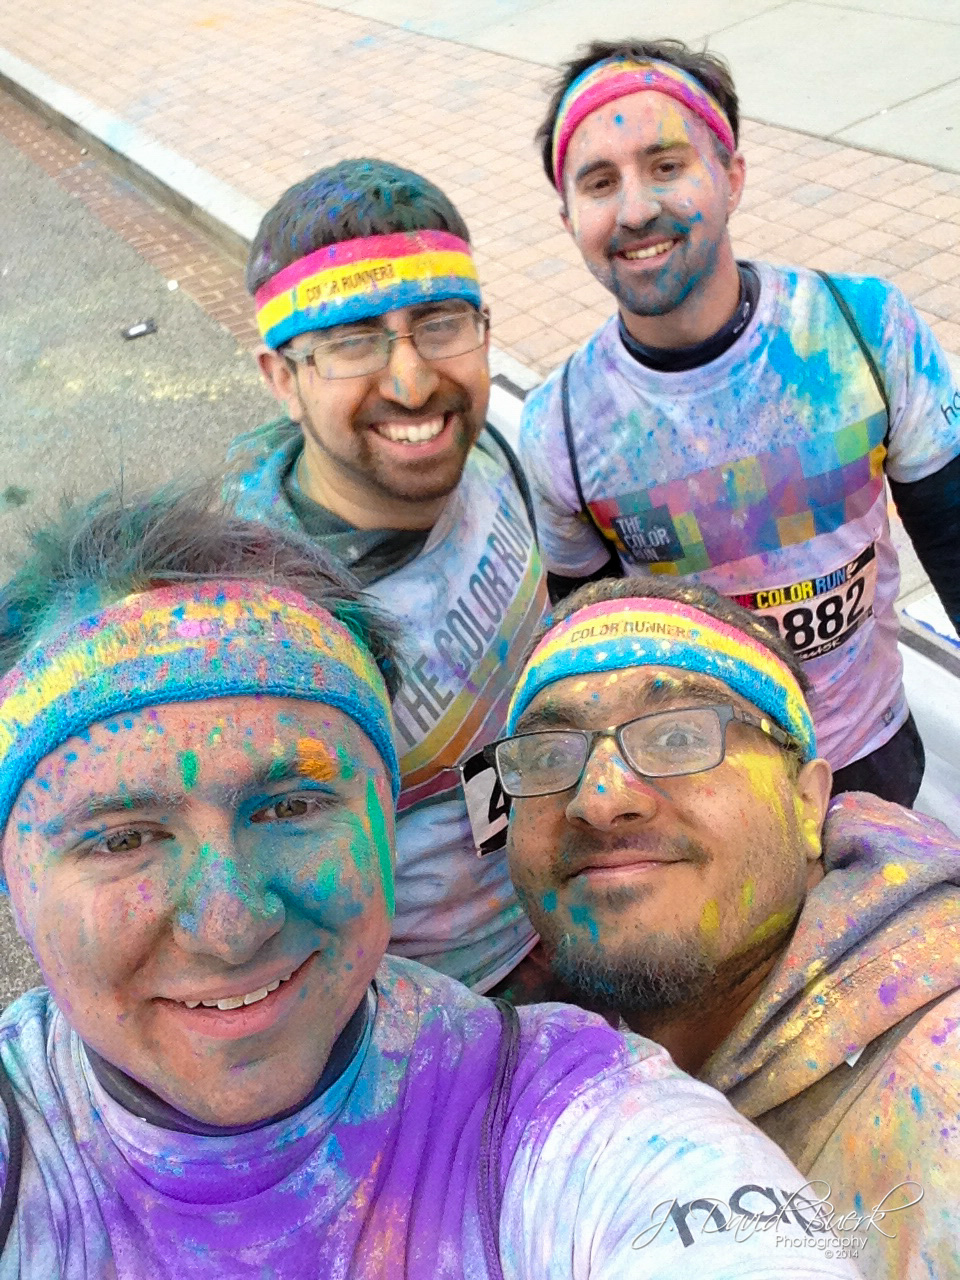 """Selfie"" was 2014's Word of the Year; here I am taking a selfie with close friends at Washington, DC's Color Run at Nationals Park."